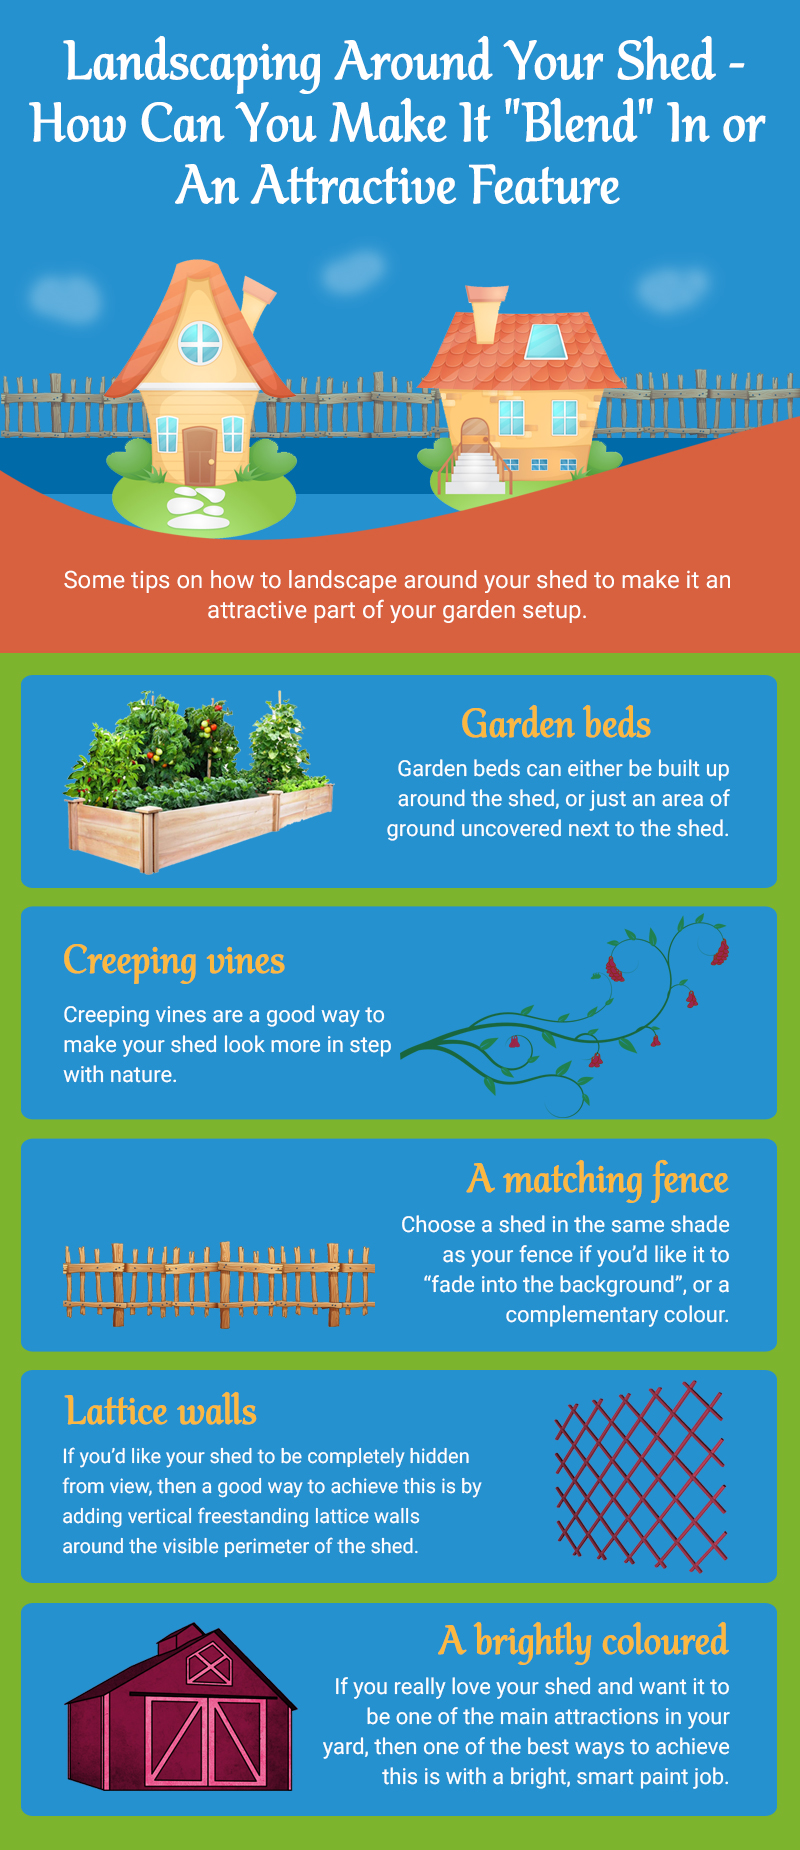 Landscaping Around Your Shed How Can You Make It Blend In or An Attractive Feature